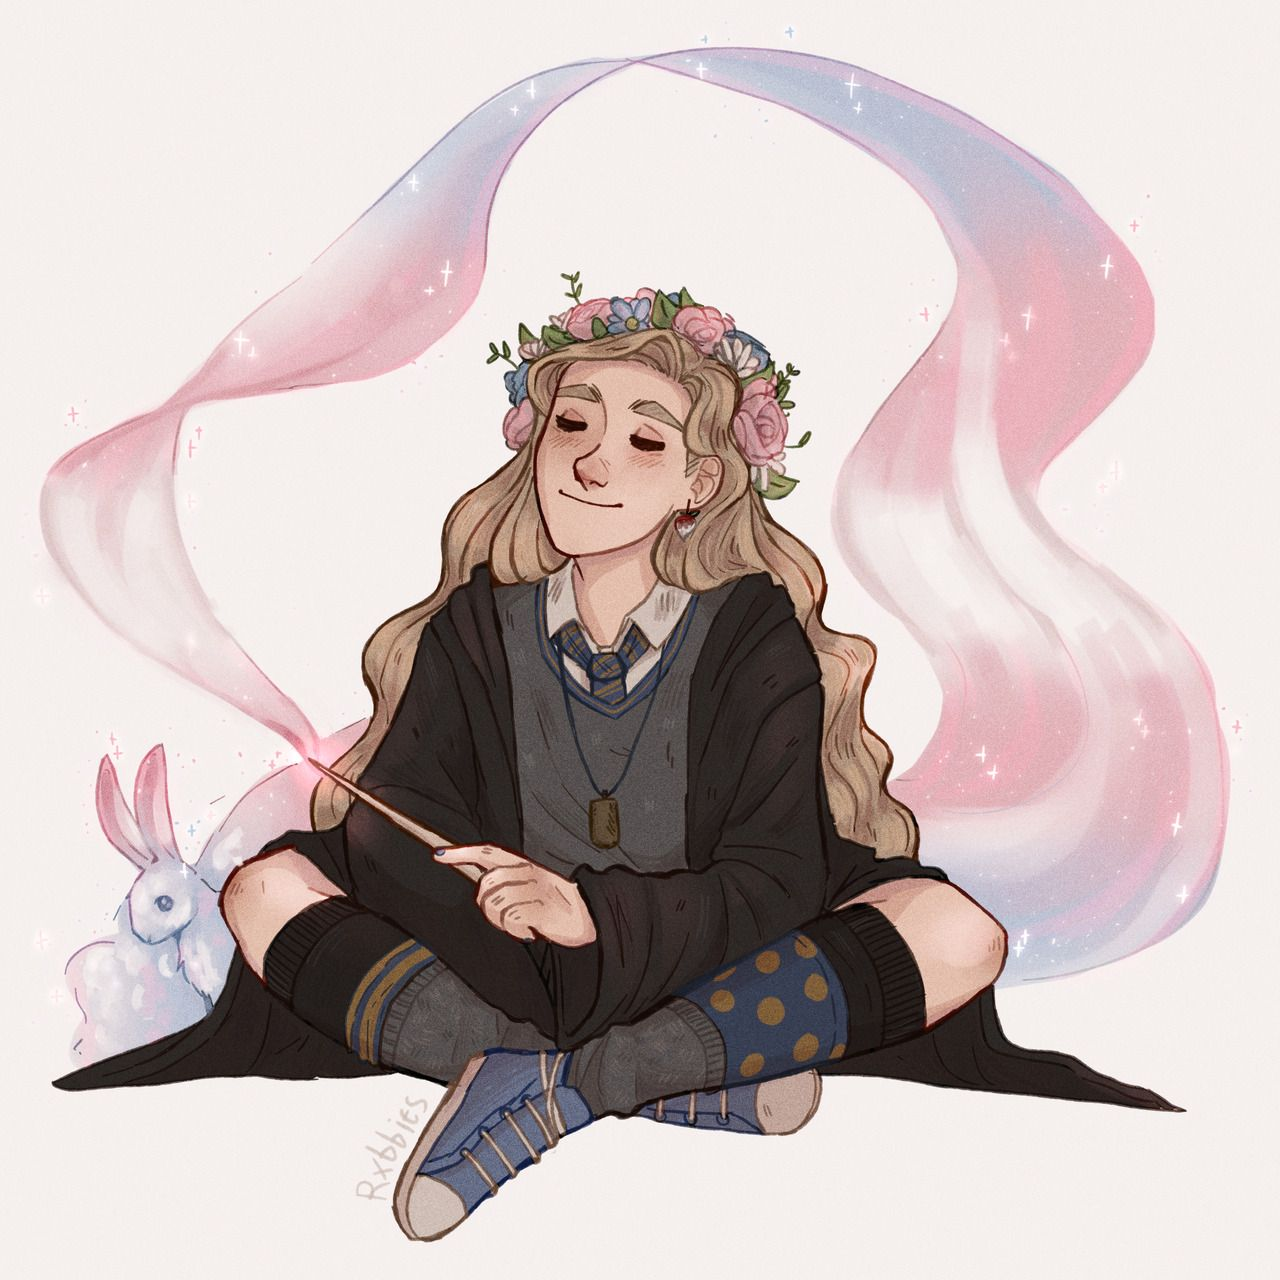 Rxbbits Hand Slips Whoopsie I Guess She S Trans Art By Myrkky Harry Potter Artwork Harry Potter Fan Art Harry Potter Drawings